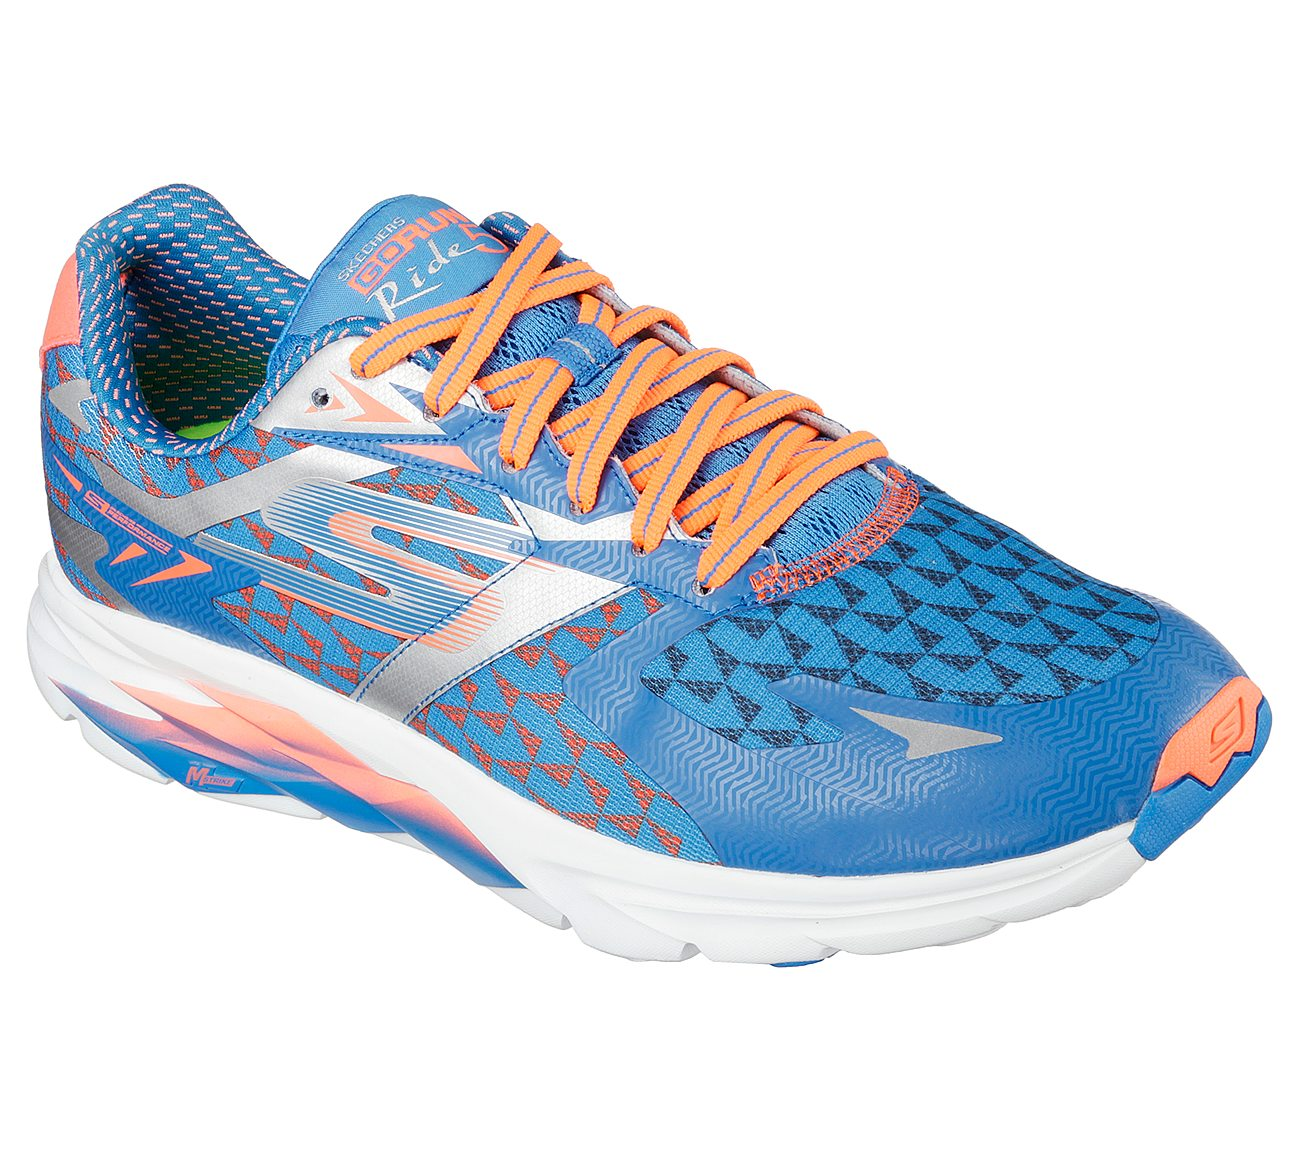 skechers running shoes for women. hover to zoom skechers running shoes for women 0